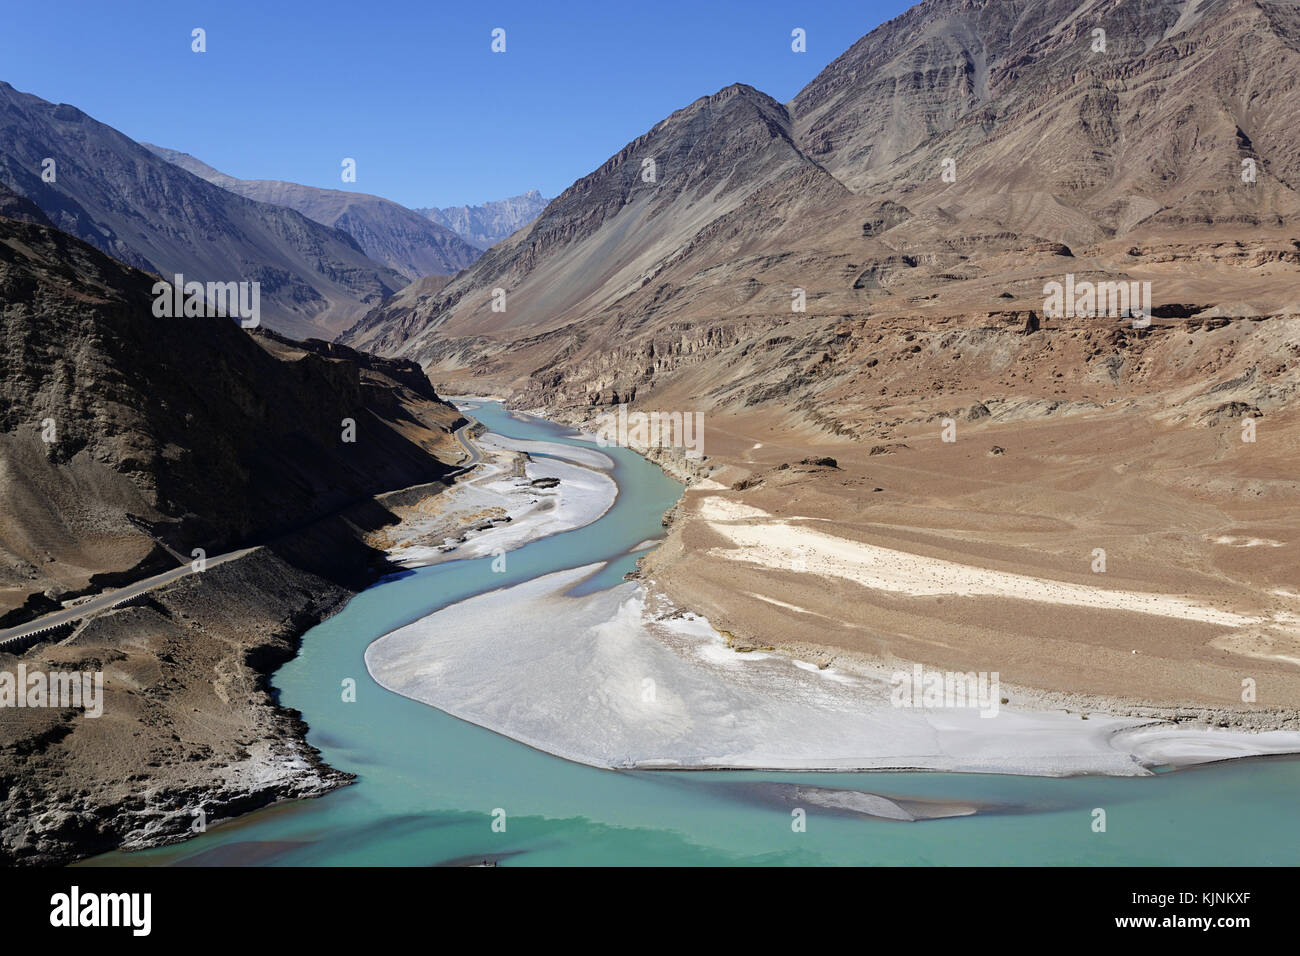 Indus River Valley Dry Stock Photos Amp Indus River Valley Dry Stock Images